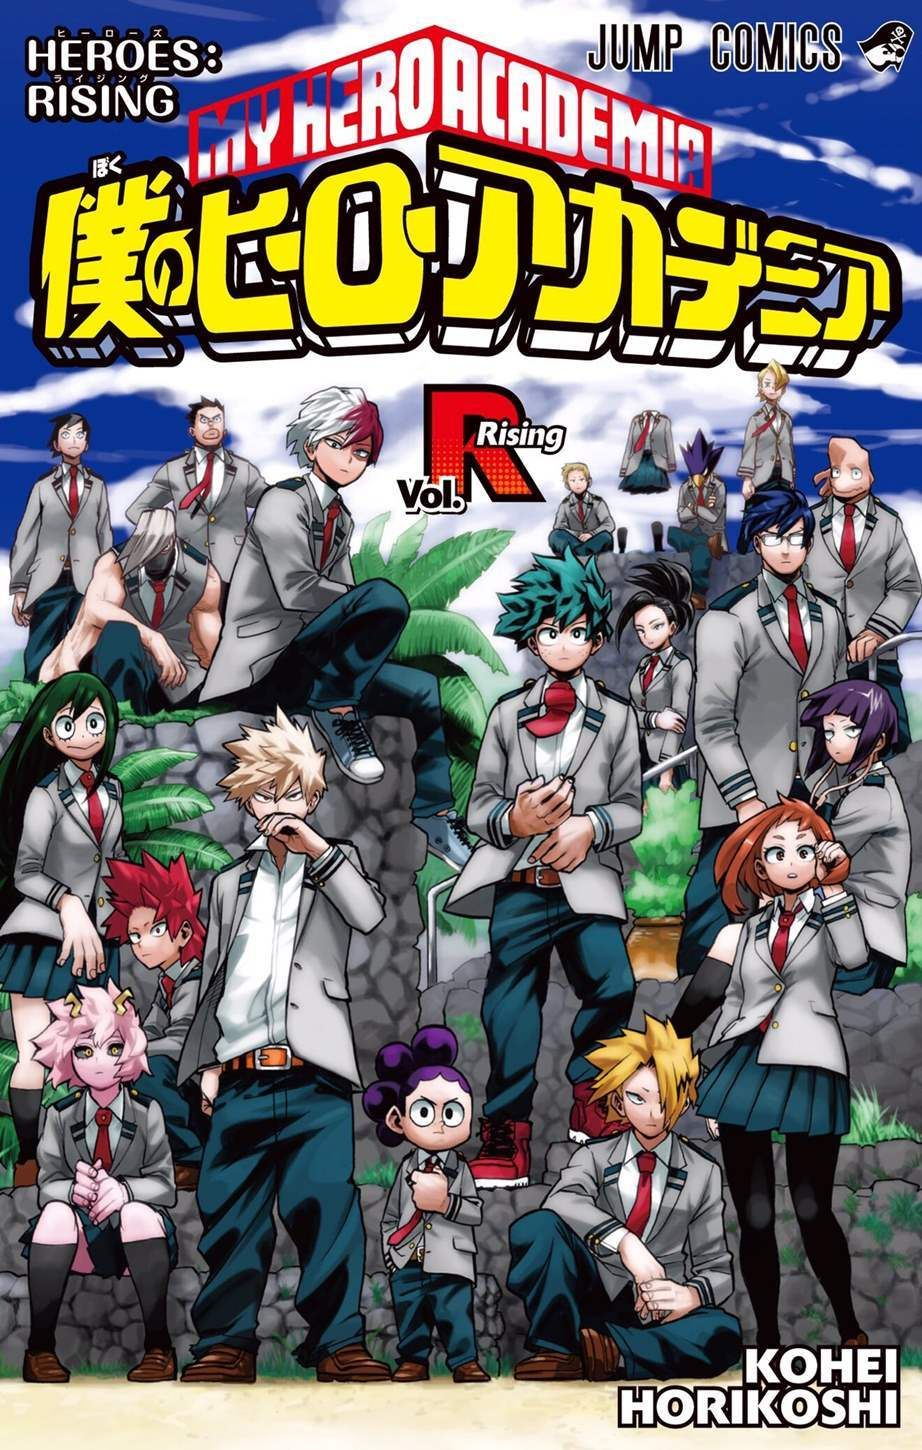 Aitai Kuji Boku No Hero Academia Heroes Rising Special Movie Manga Vol Rising